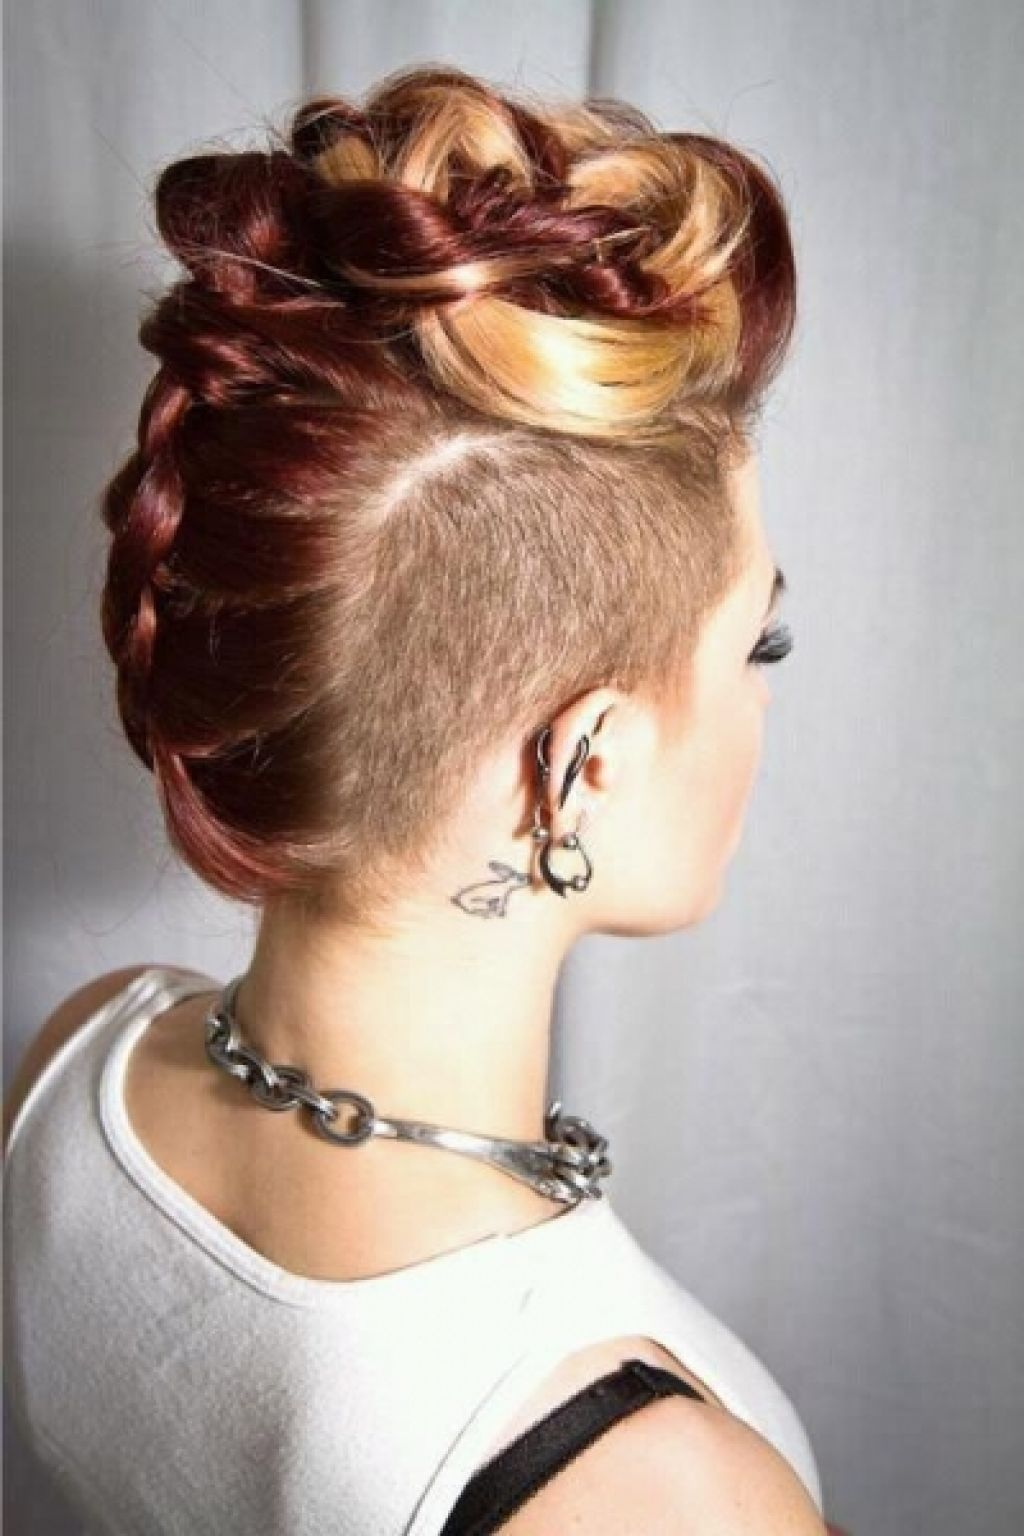 new wedding hairstyles – the trendiest looks for brides